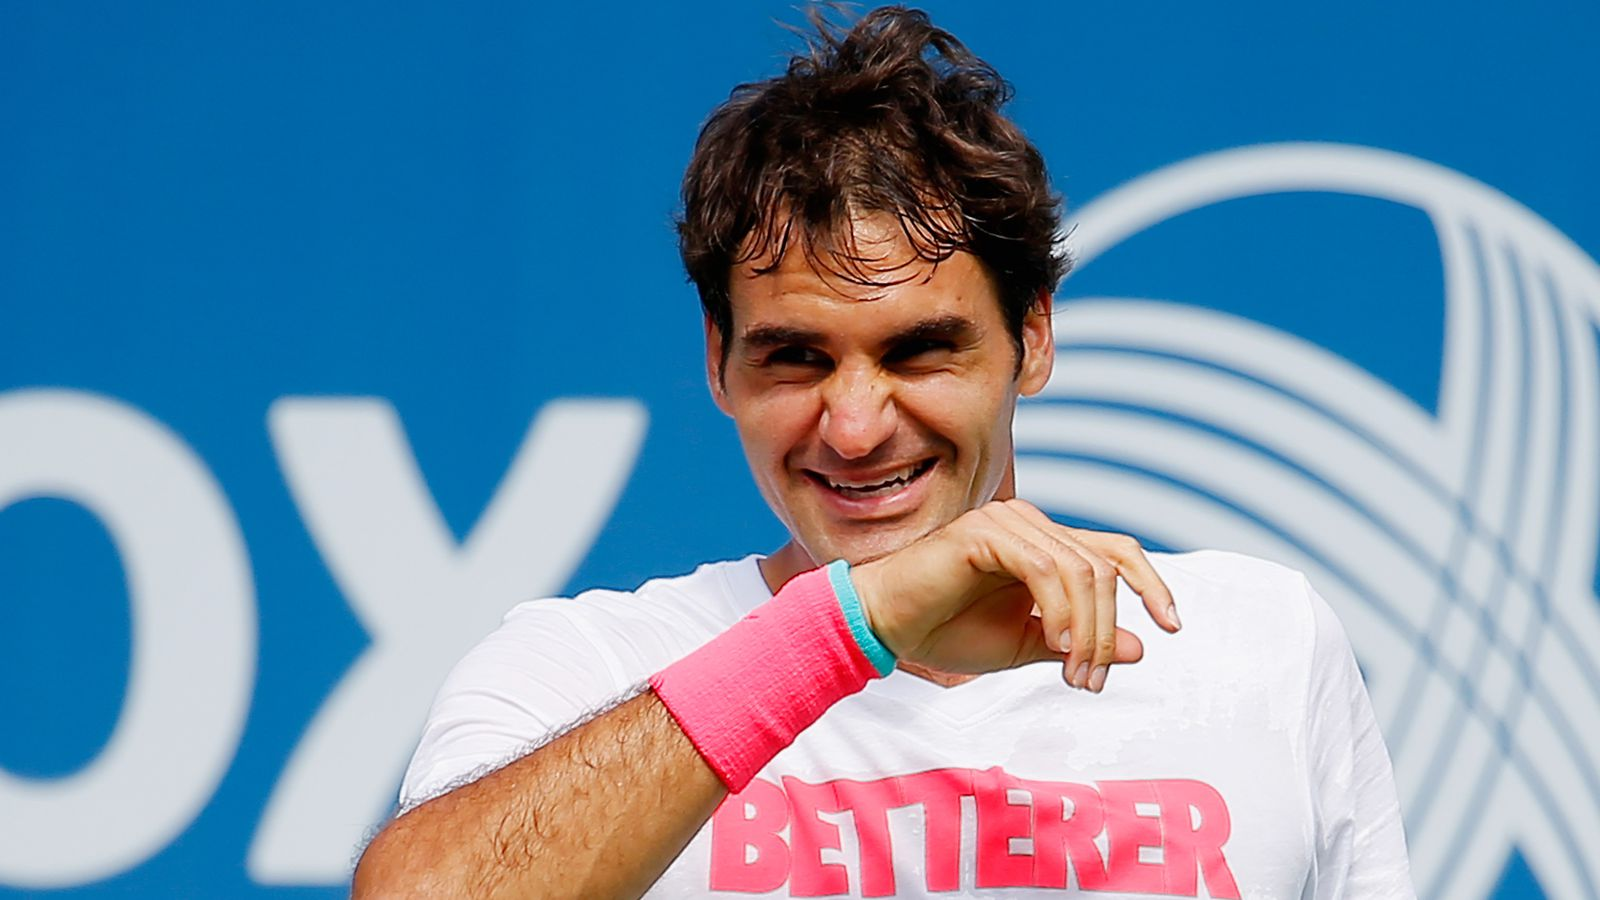 2014 U.S. Open: Schedule, TV coverage and live streaming for Day 2